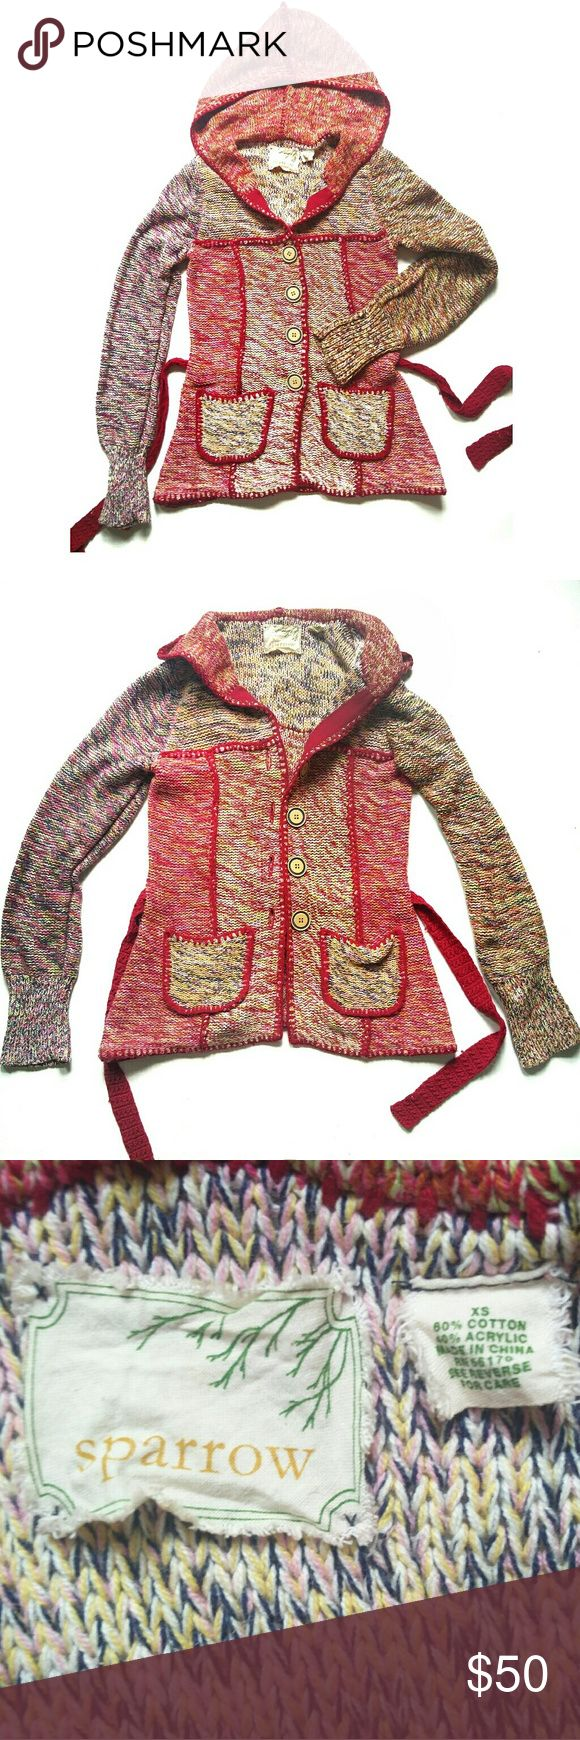 ANTHRO Sparrow Multicolor Hooded Cardigan sz. XS Awesome Multicolored Patchwork design Knit Hooded Cardigan by Anthropologie Sparrow  sz. XS (would fit sz Small 0-2 well) EXCELLENT PRE-OWNED CONDITION  2 pockets  Belt Large decorative buttons   SMOKE AND PETS FREE HOUSE  WILL SHIP WITHIN 24 HOURS FROM CLEARED PAYMENT Anthropologie Sweaters Cardigans